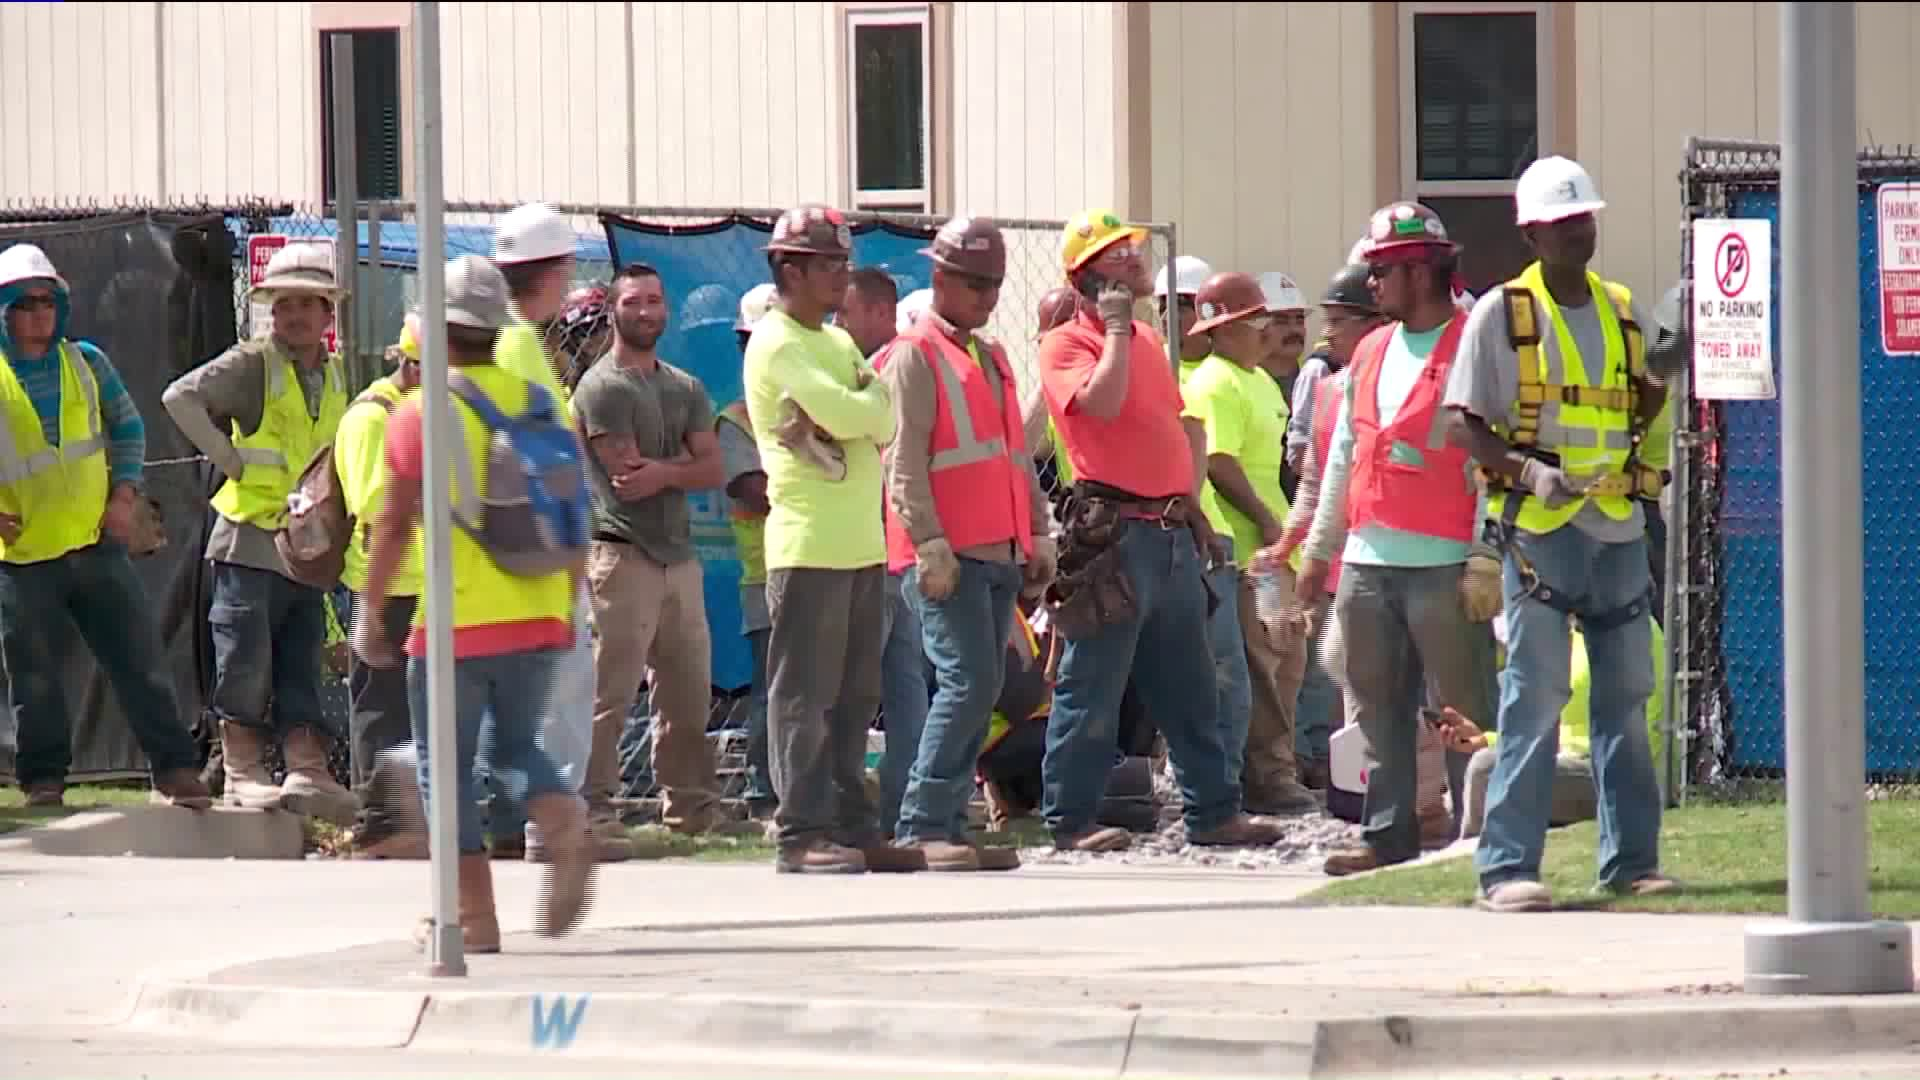 Construction workers gathered outside of work zone after scissor lift operator dies